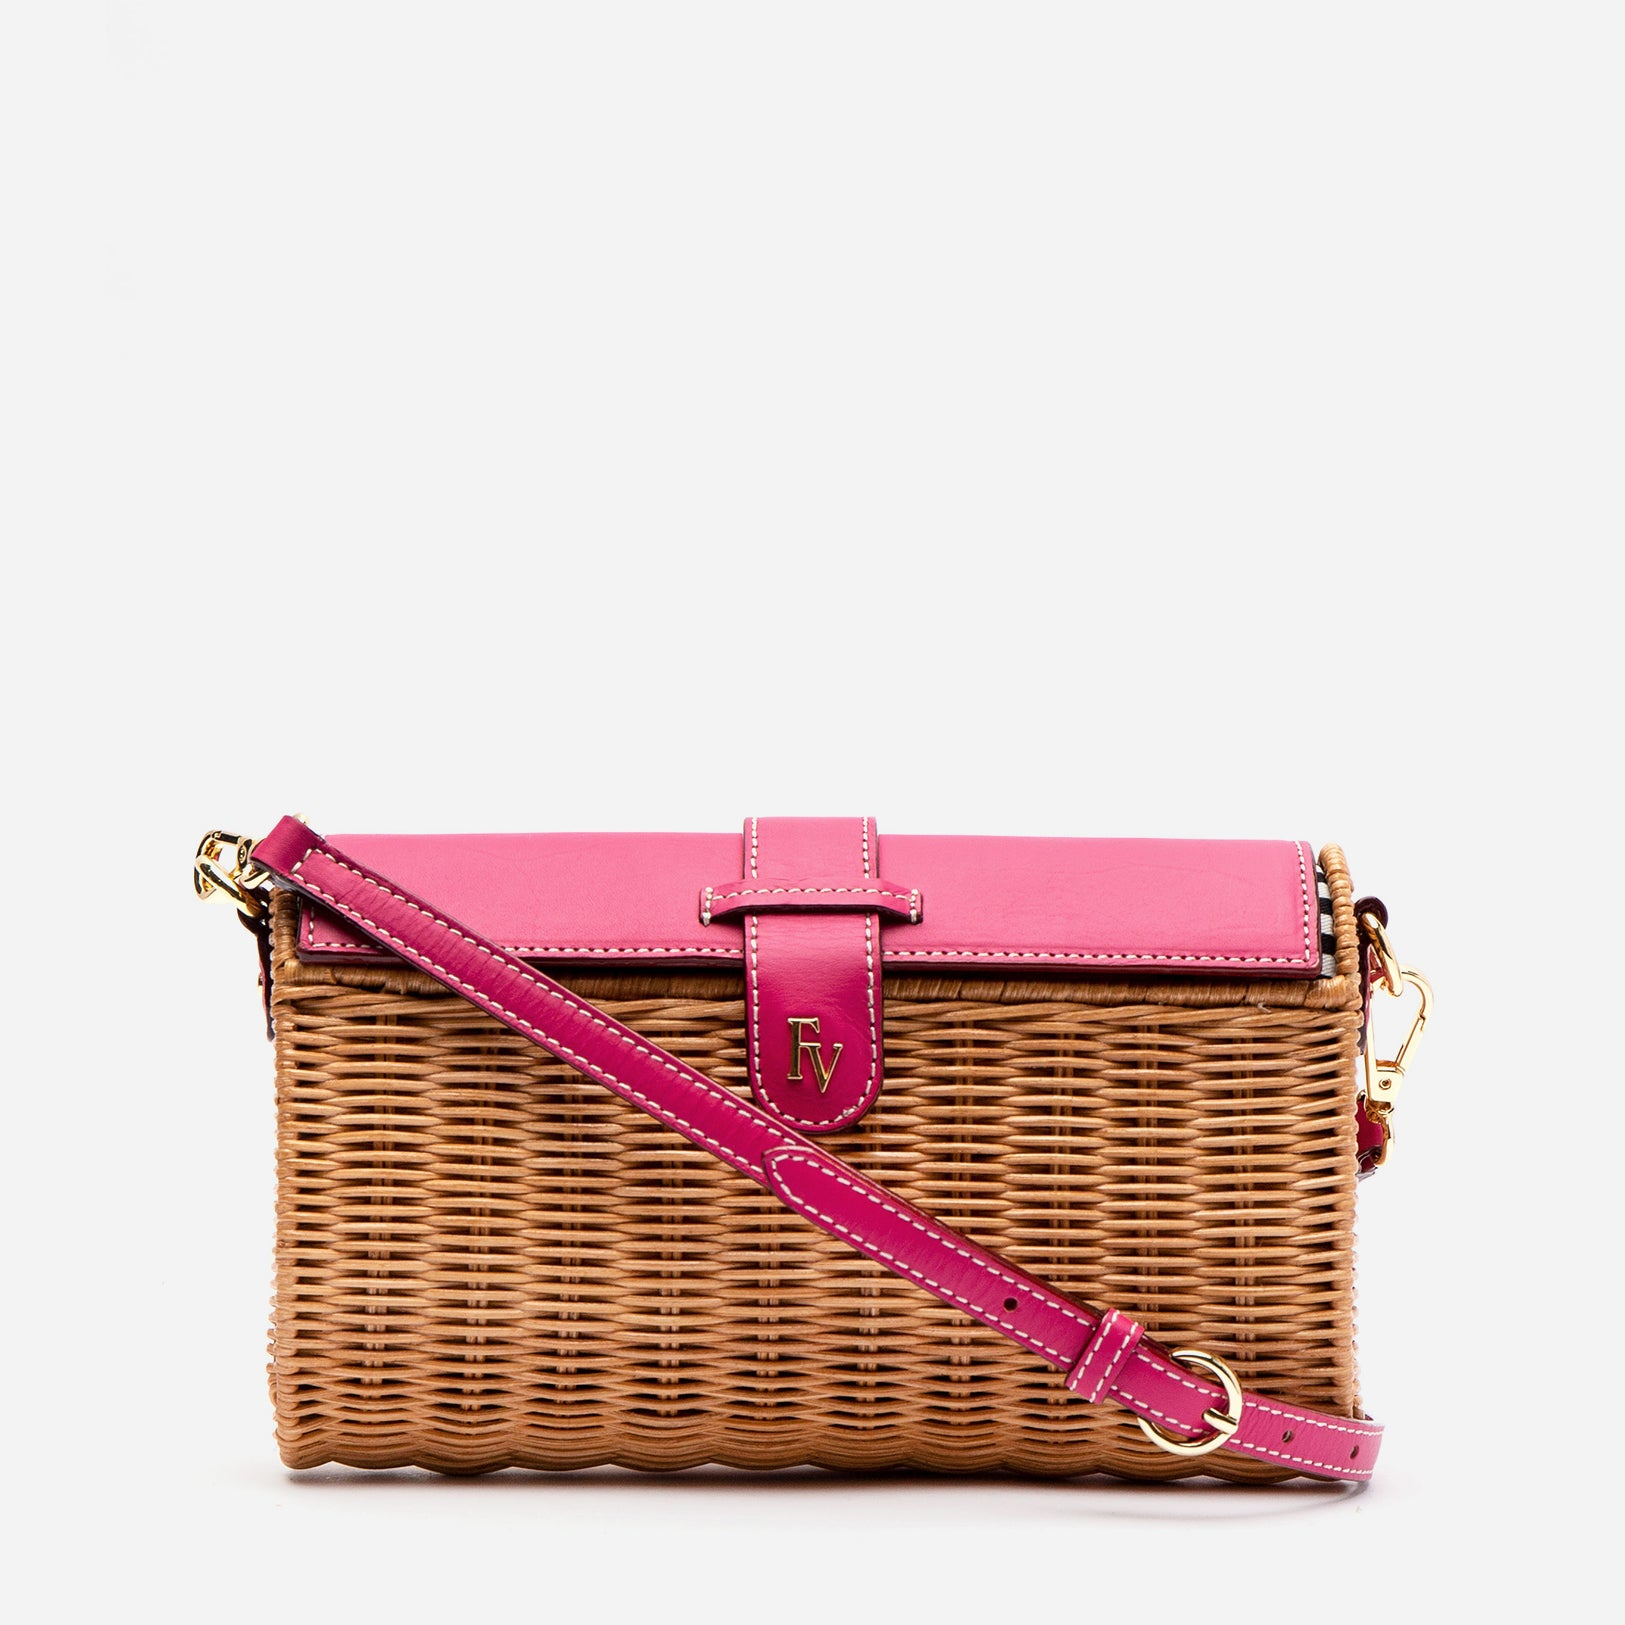 Betsy Wicker Basket Bag Bright Pink - Frances Valentine